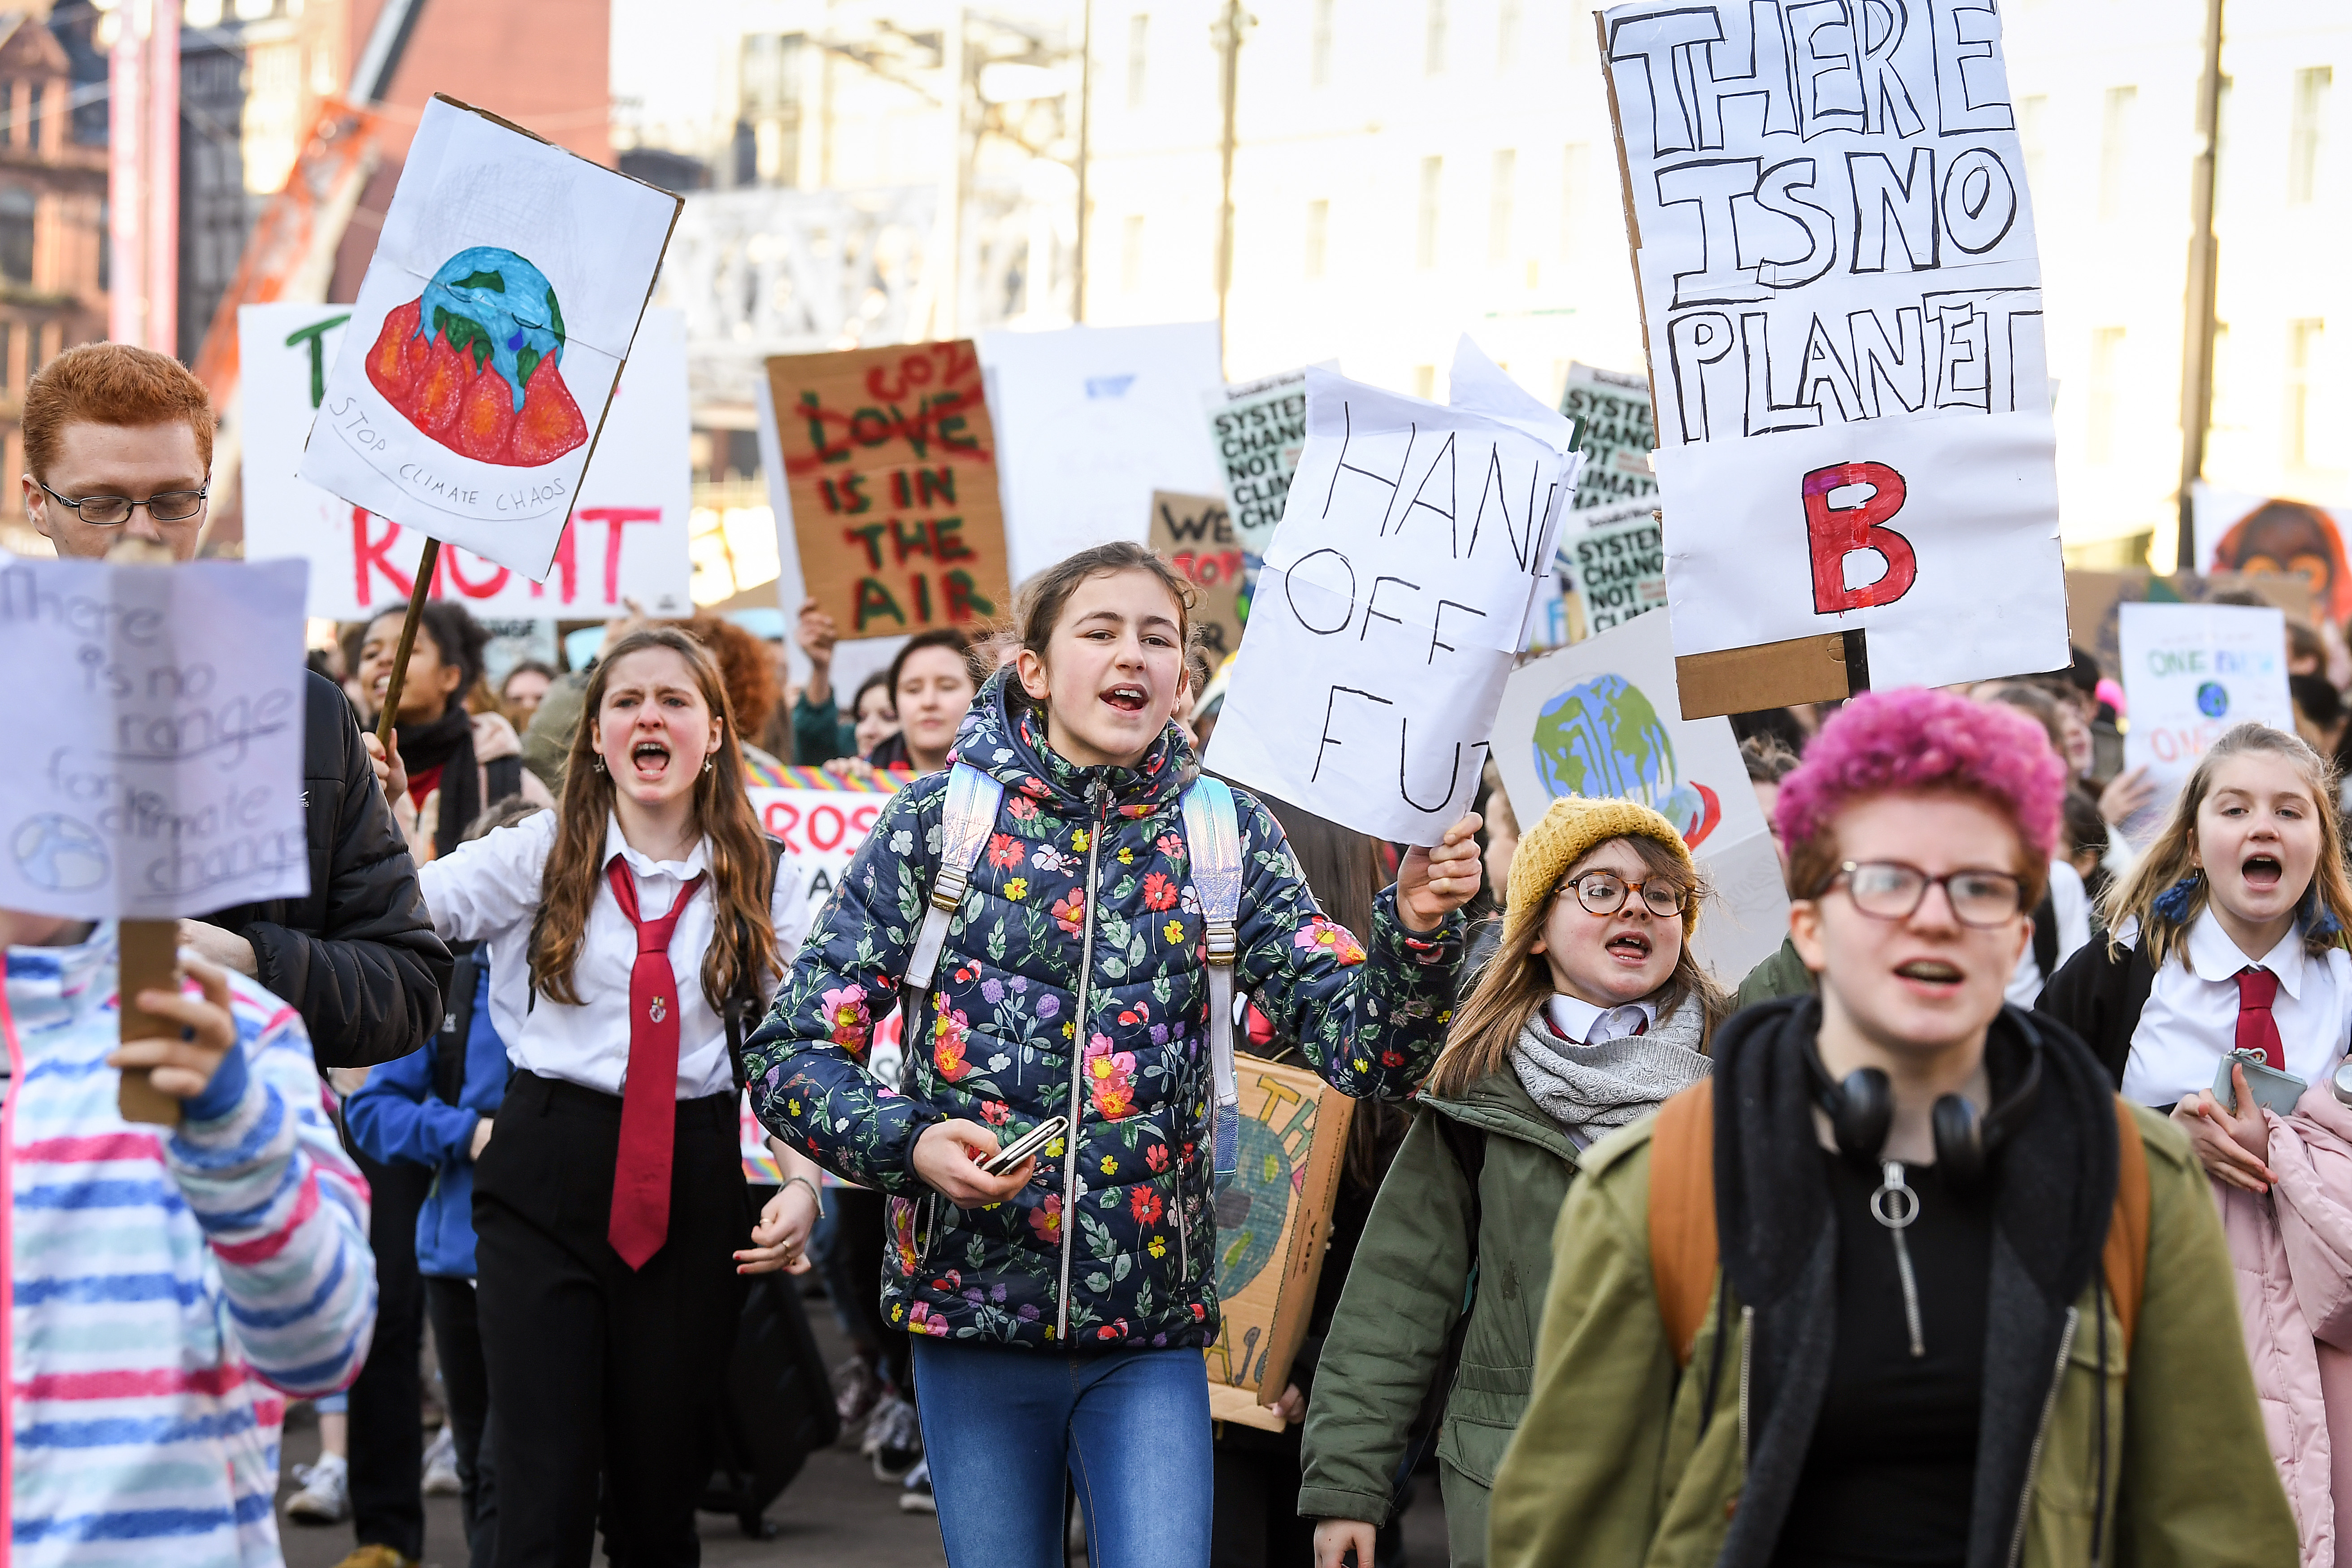 GLASGOW, UNITED KINGDOM - FEBRUARY 15: Schoolchildren take part in a nation-wide student climate march in George Square on February 15, 2019 in Glasgow, United Kingdom.Thousands of UK pupils from schools, colleges and universities will walk out today for a nationwide climate change strike. Students in 60 cities from the West Country to Scotland are protesting, urging the government to declare a climate emergency and take action over the problem. They are keen that the national curriculum is reformed and the environmental crisis is communicated to the public. Similar strikes have taken place in Australia and in European countries such as Belgium and Sweden. (Photo by Jeff J Mitchell/Getty Images)